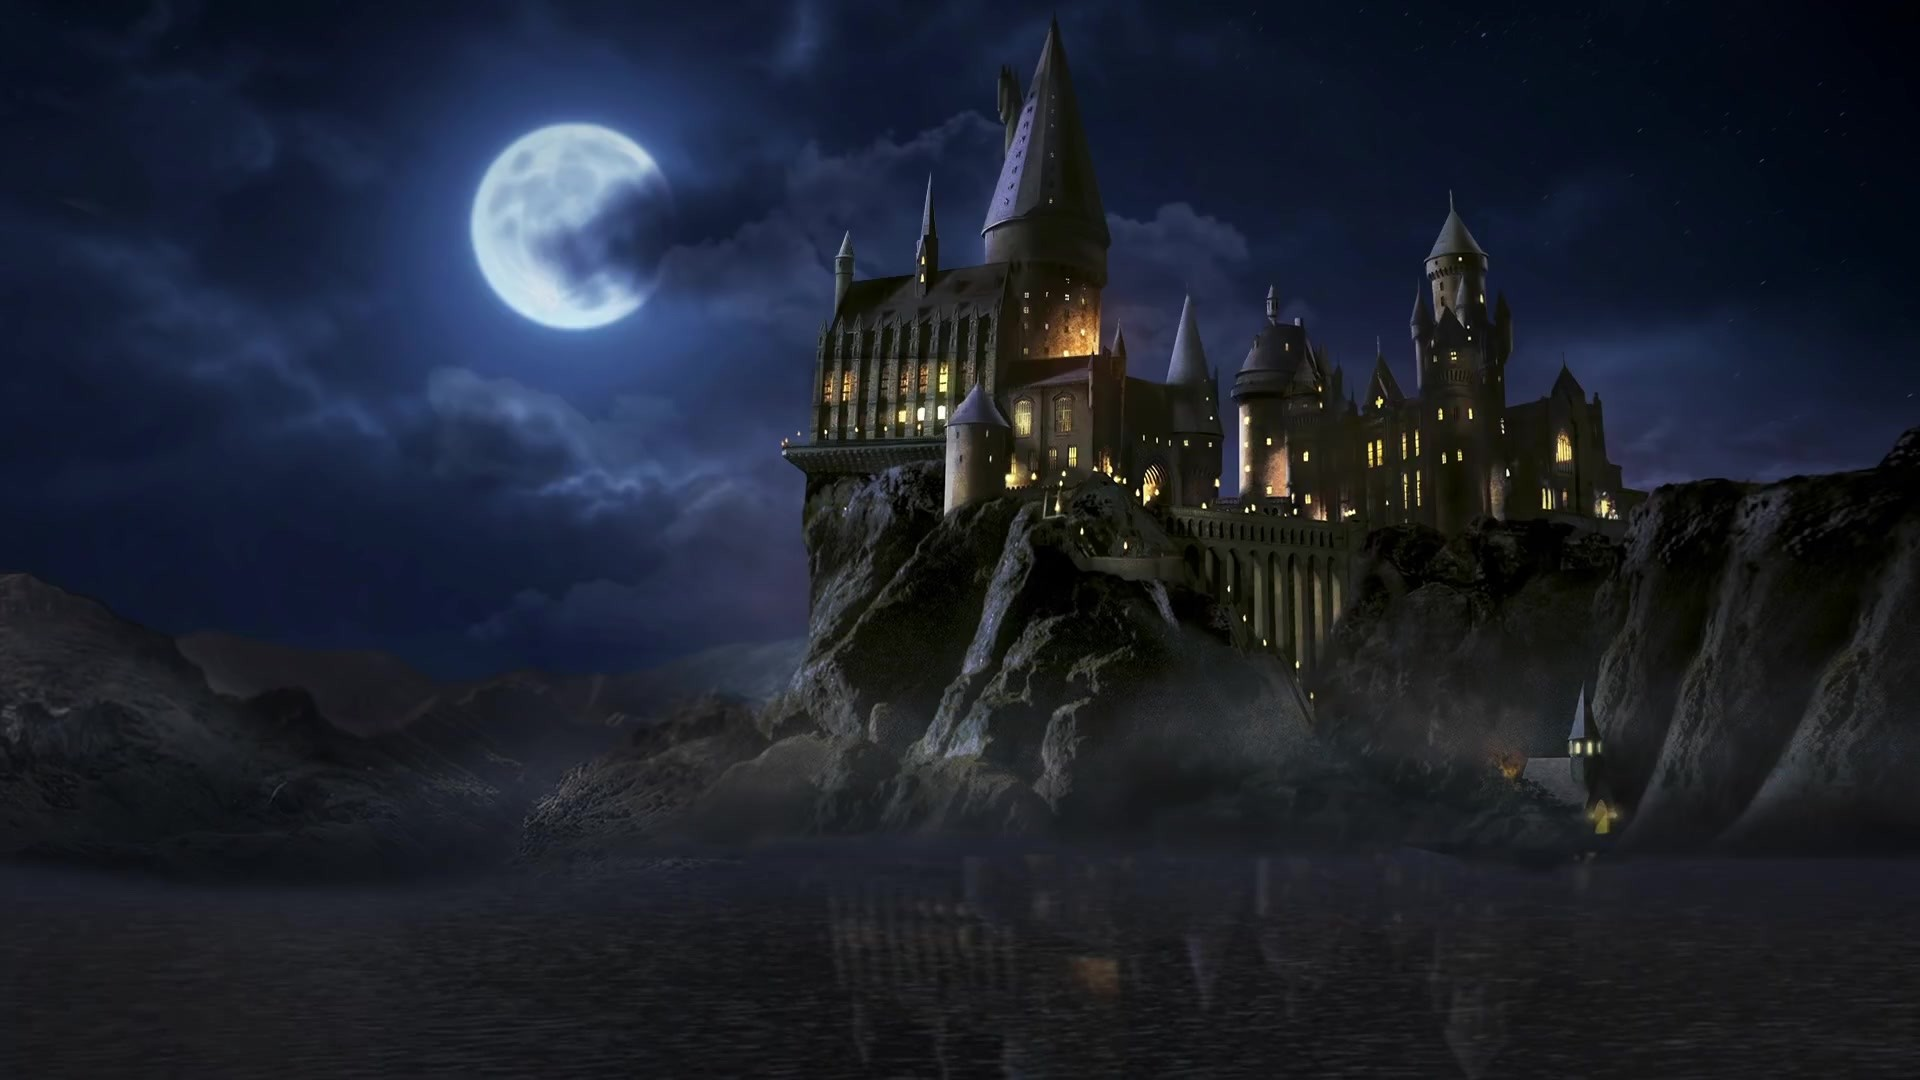 Hogwarts hd wallpaper download